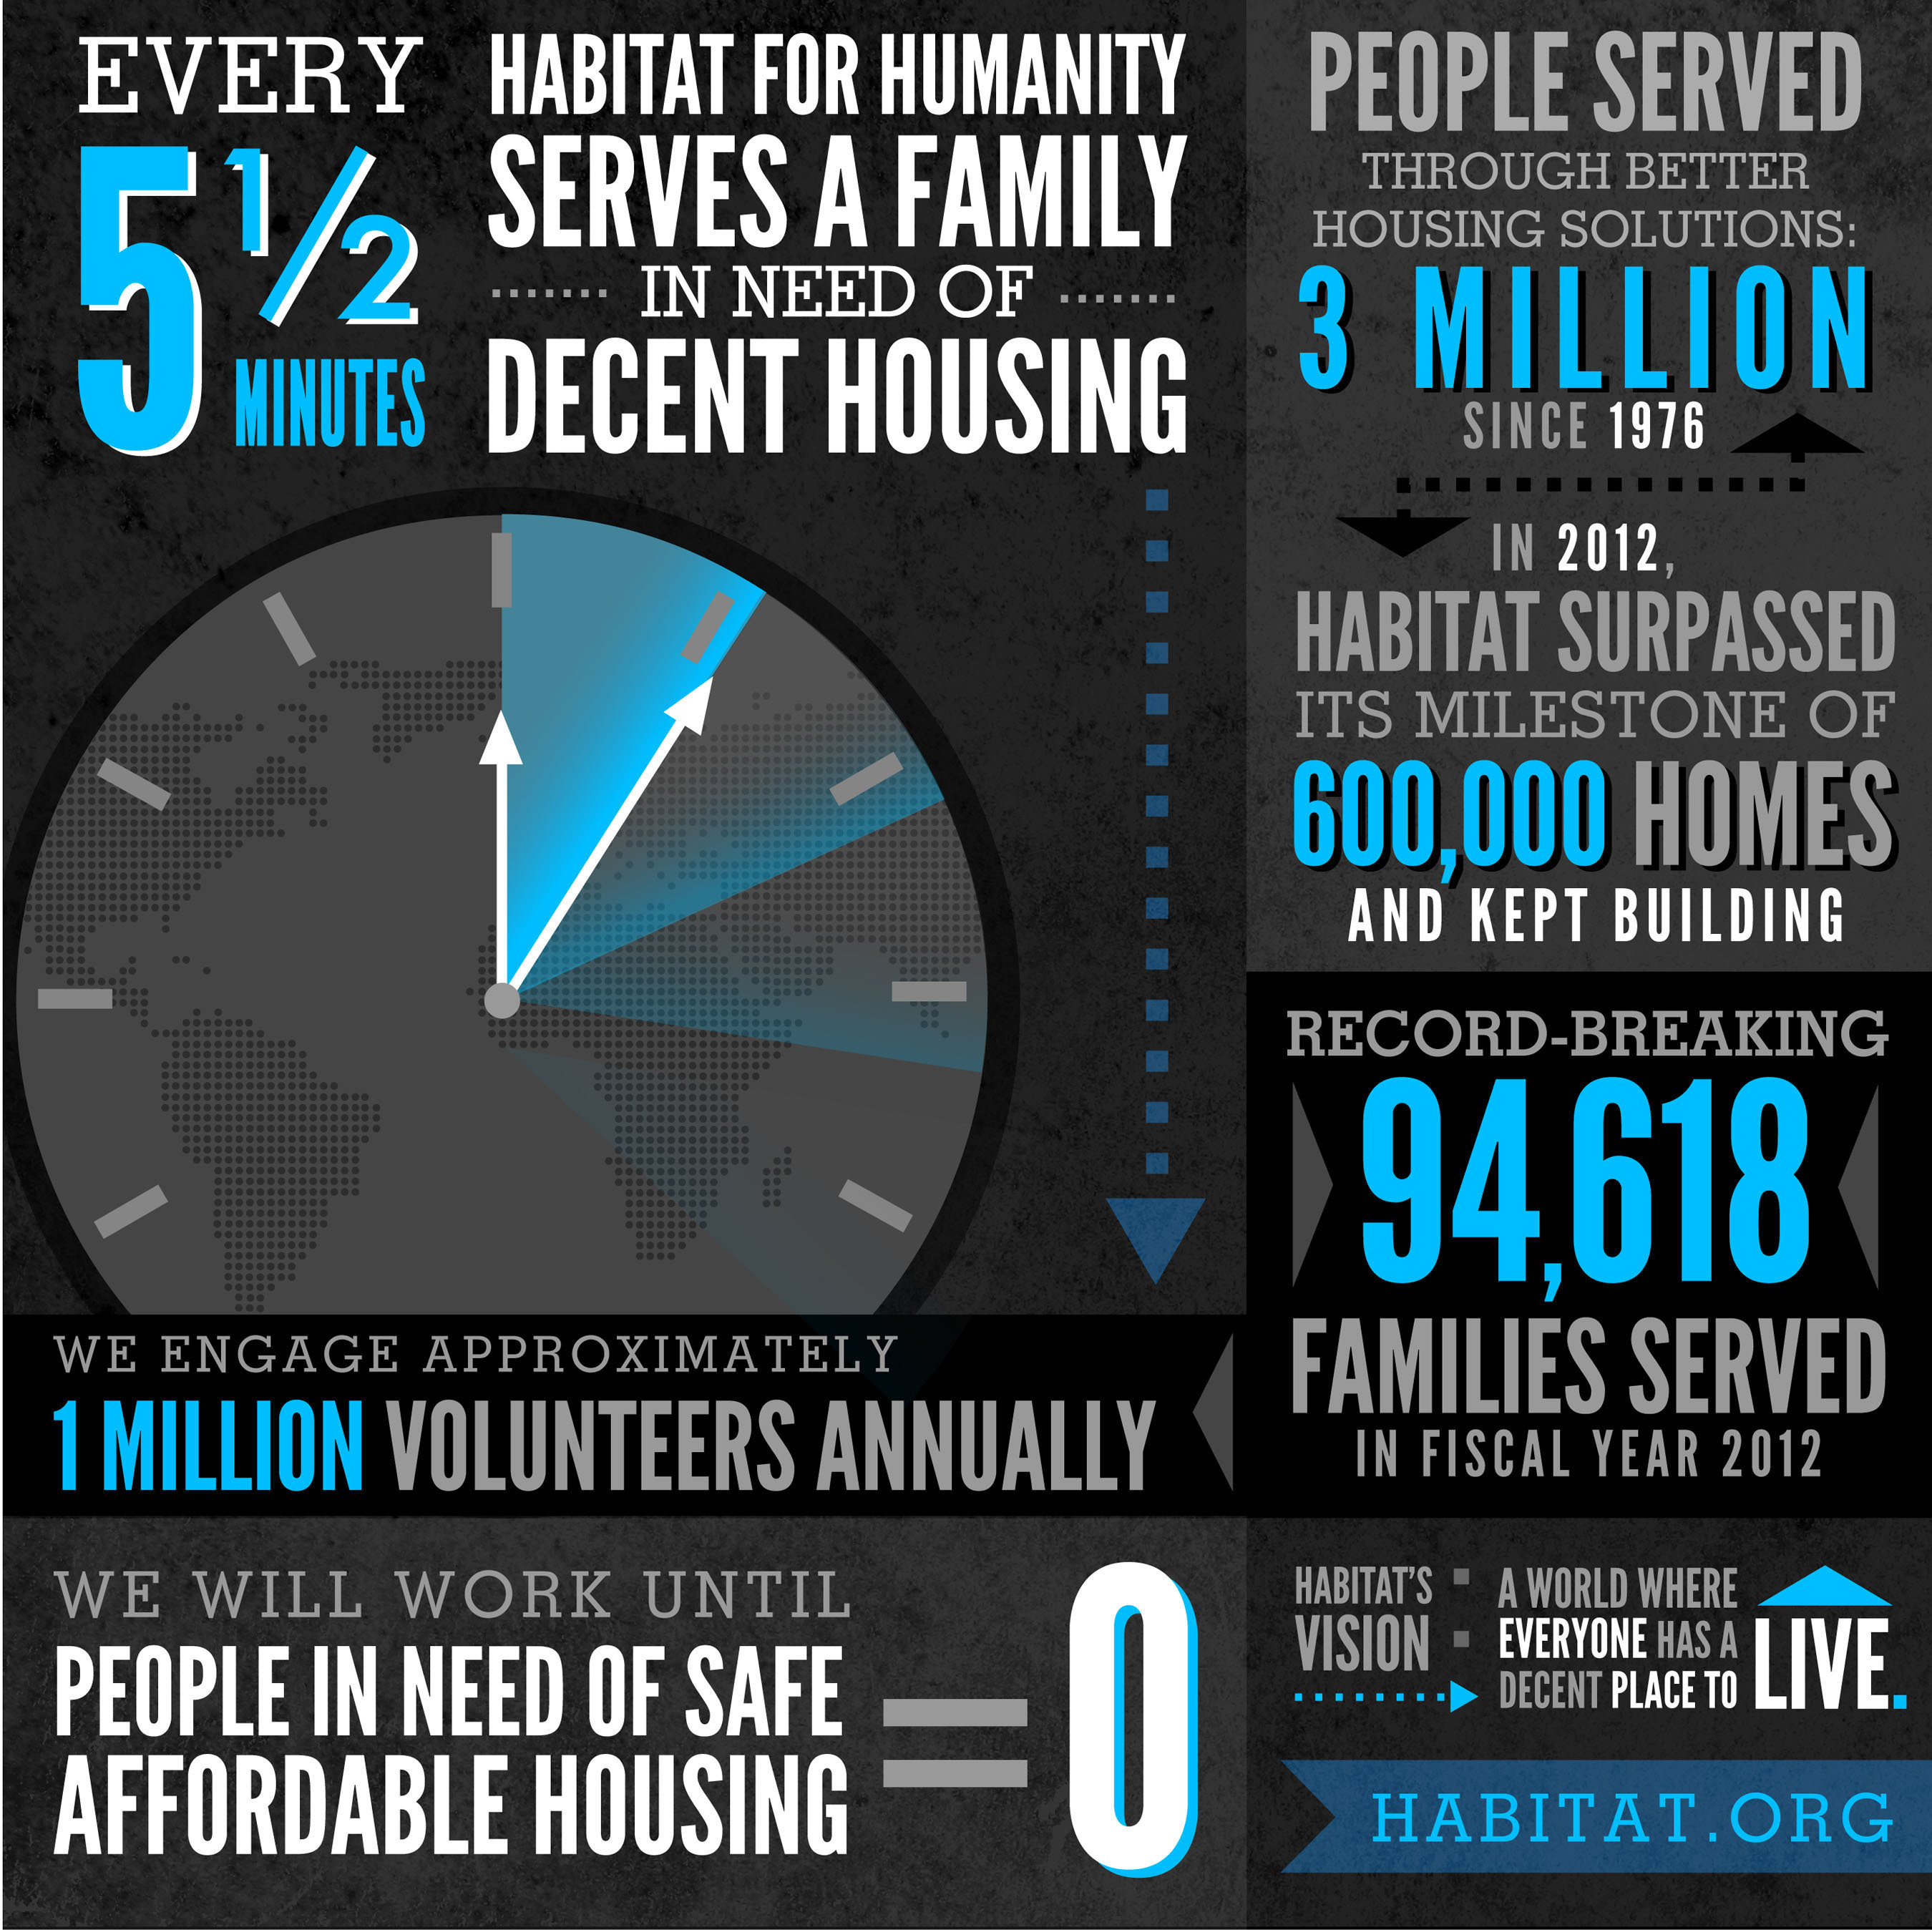 Habitat for Humanity served a record 94,618 families in fiscal year 2012.  (PRNewsFoto/Habitat for Humanity International)